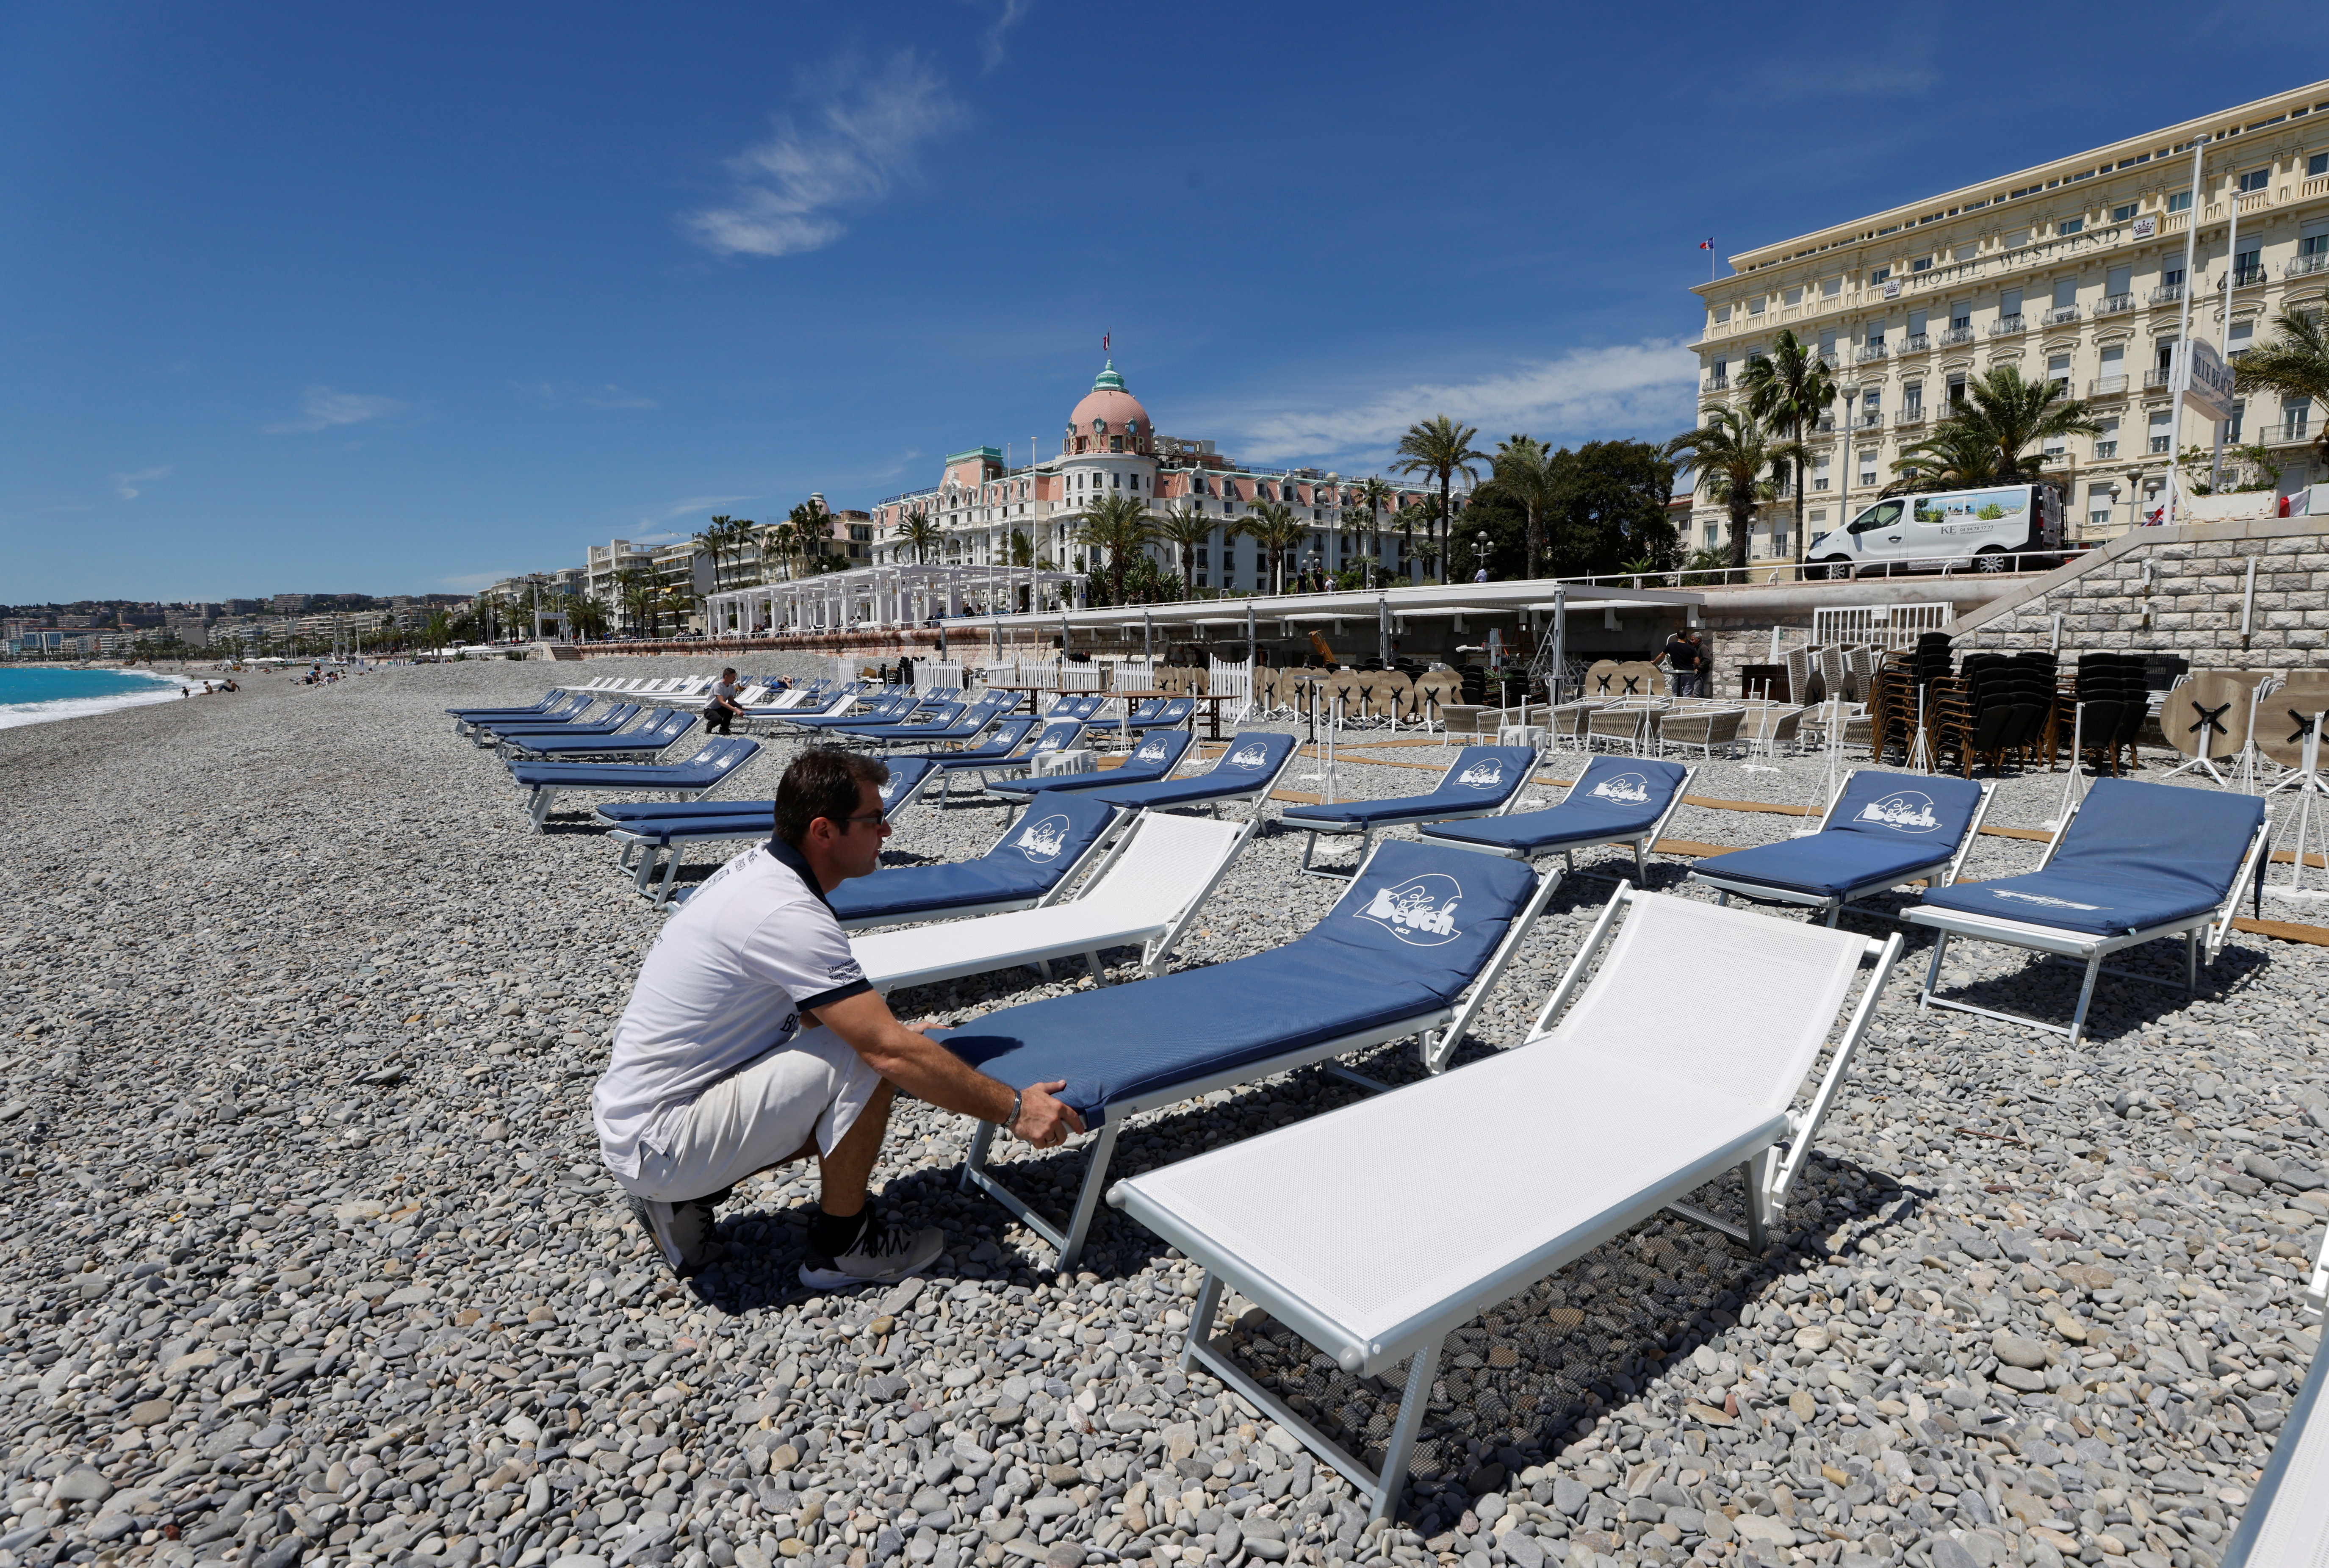 A beach worker installs mattresses on deckchairs during preparations for the reopenning of restaurants, bars and beaches in Nice as part of an easing of the country's lockdown restrictions amid the coronavirus disease (COVID-19) outbreak in France, May 17, 2021. REUTERS/Eric Gaillard